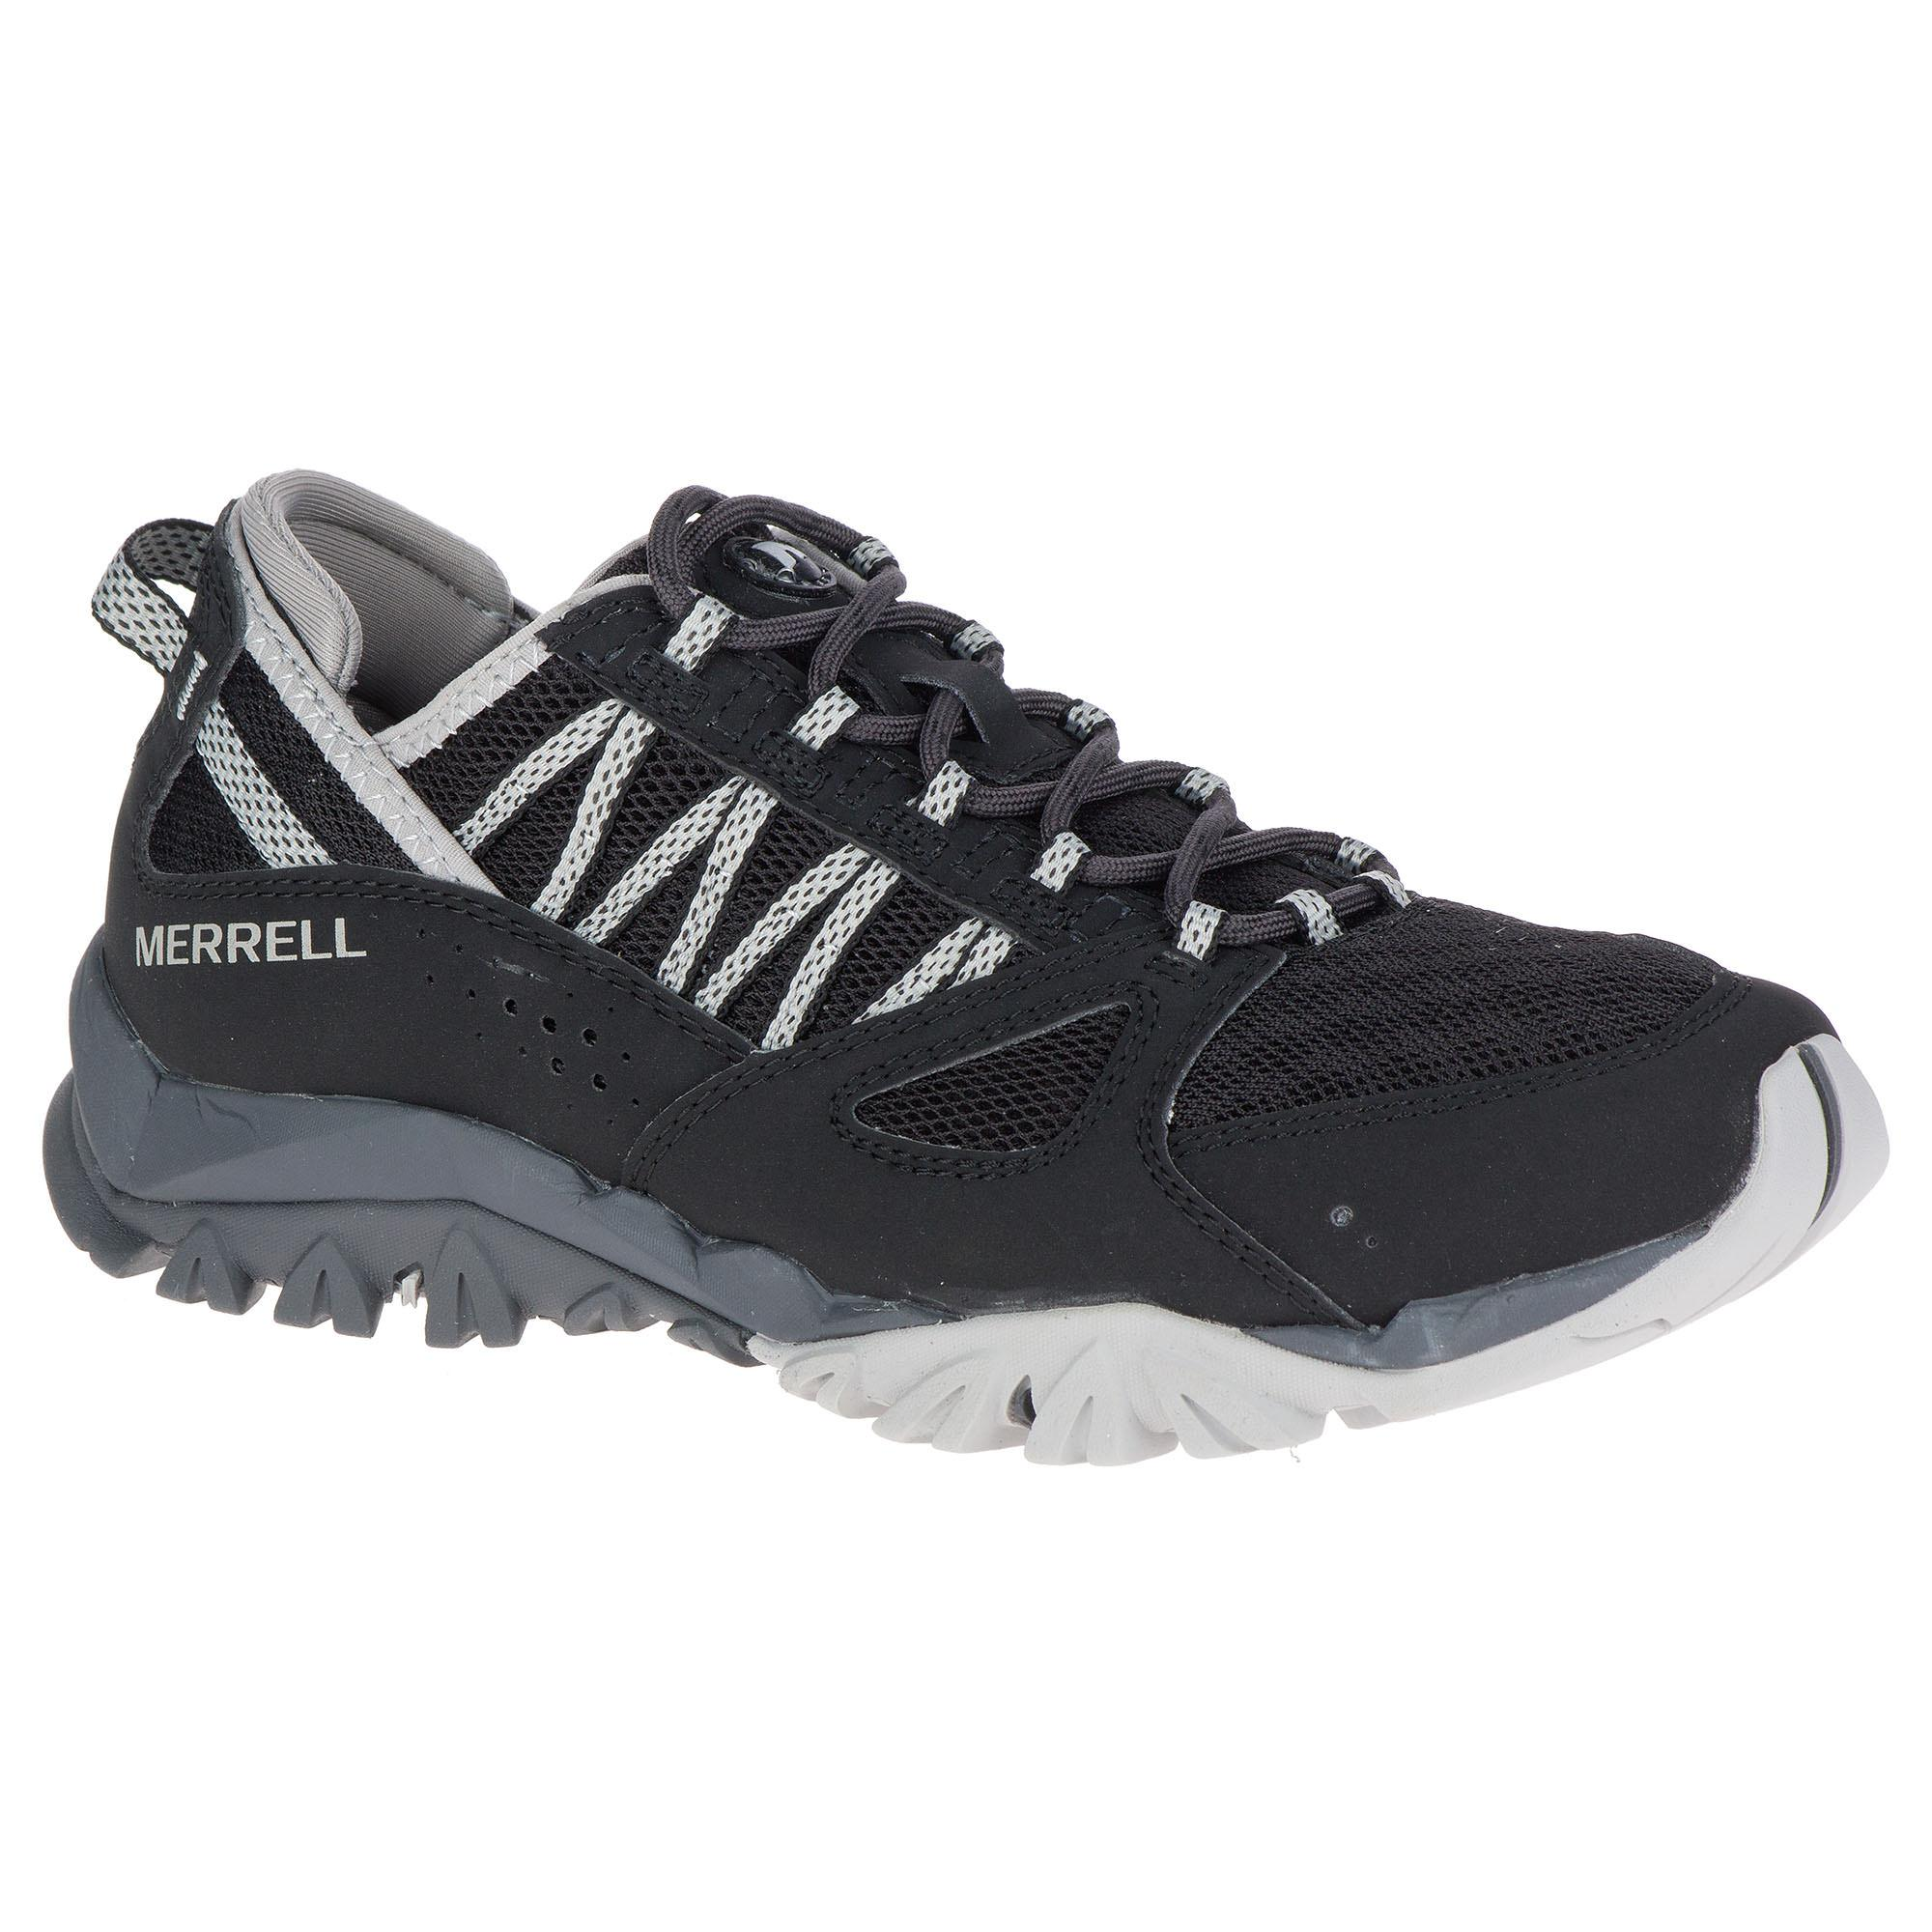 0db8d87d9e13 Hiking Shoes for Women for sale - Womens Hiking Boots online brands ...